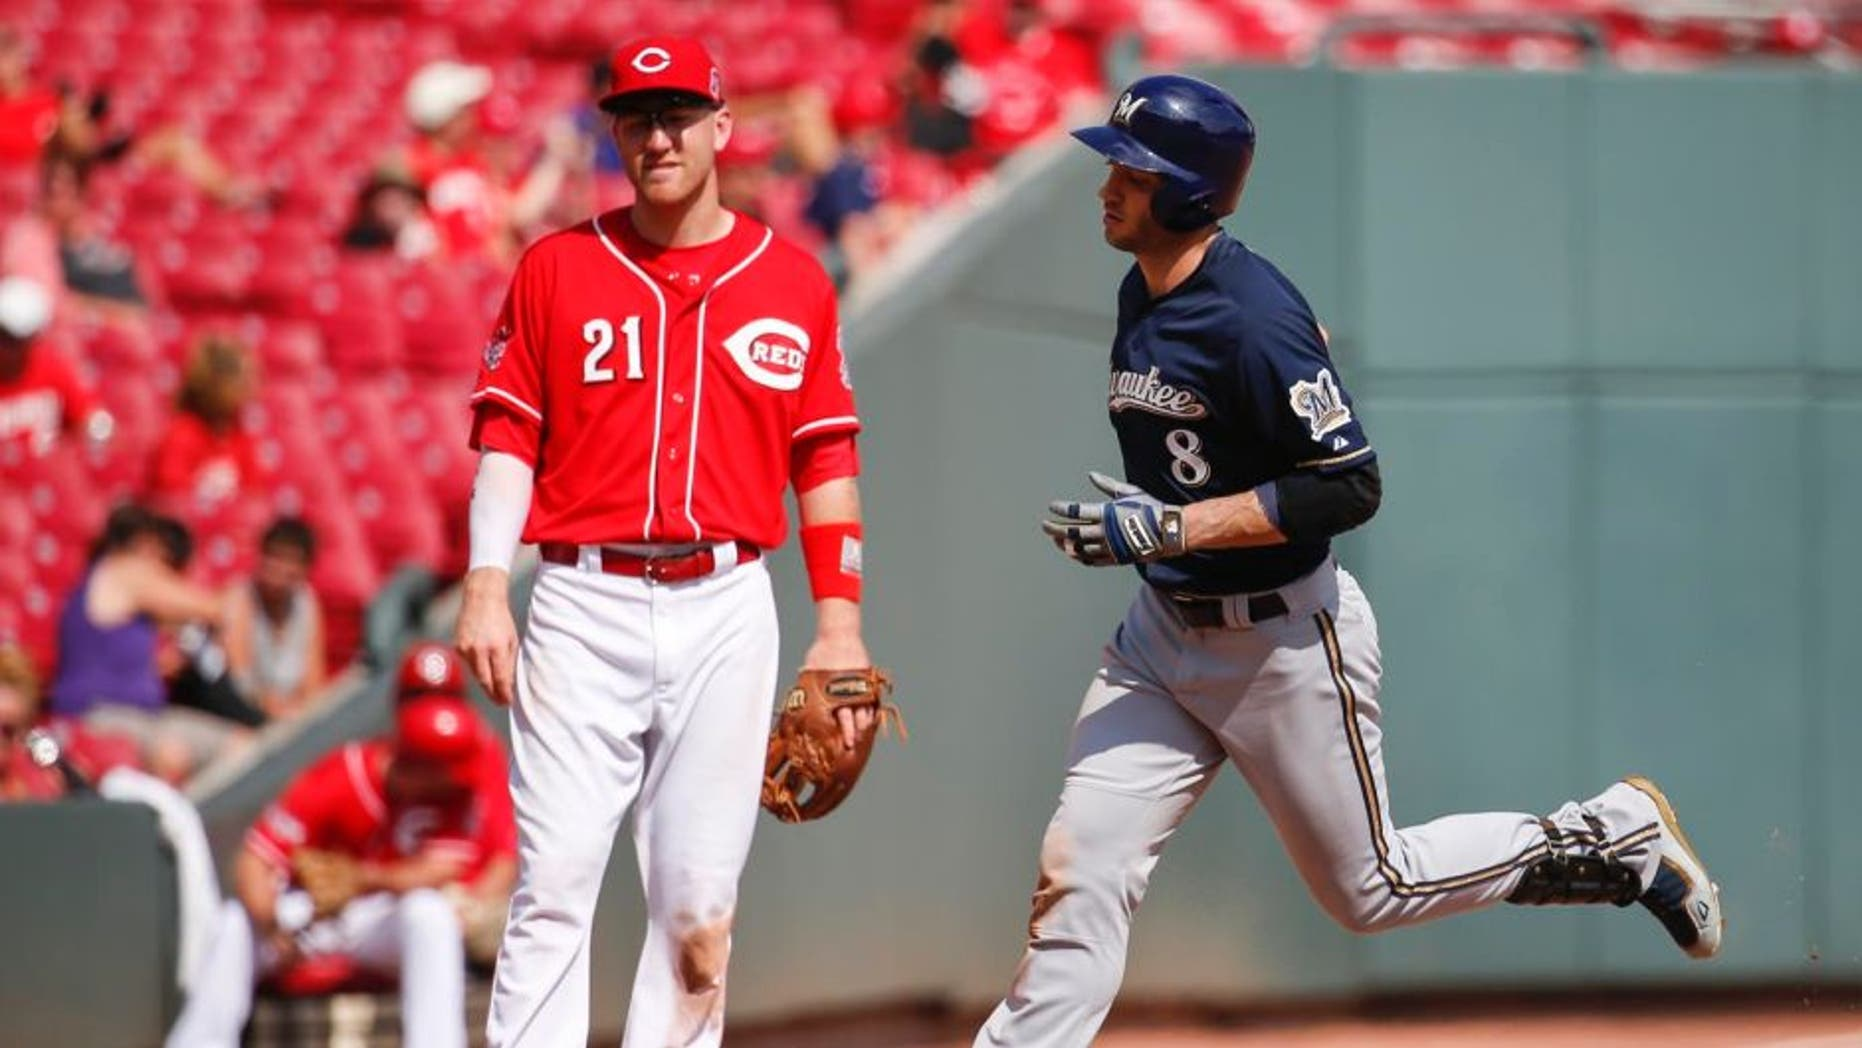 The Milwaukee Brewers' Ryan Braun rounds third after hitting a solo home run as Cincinnati Reds third baseman Todd Frazier looks on in the eighth inning Sunday, Sept. 6, 2015, in Cincinnati.